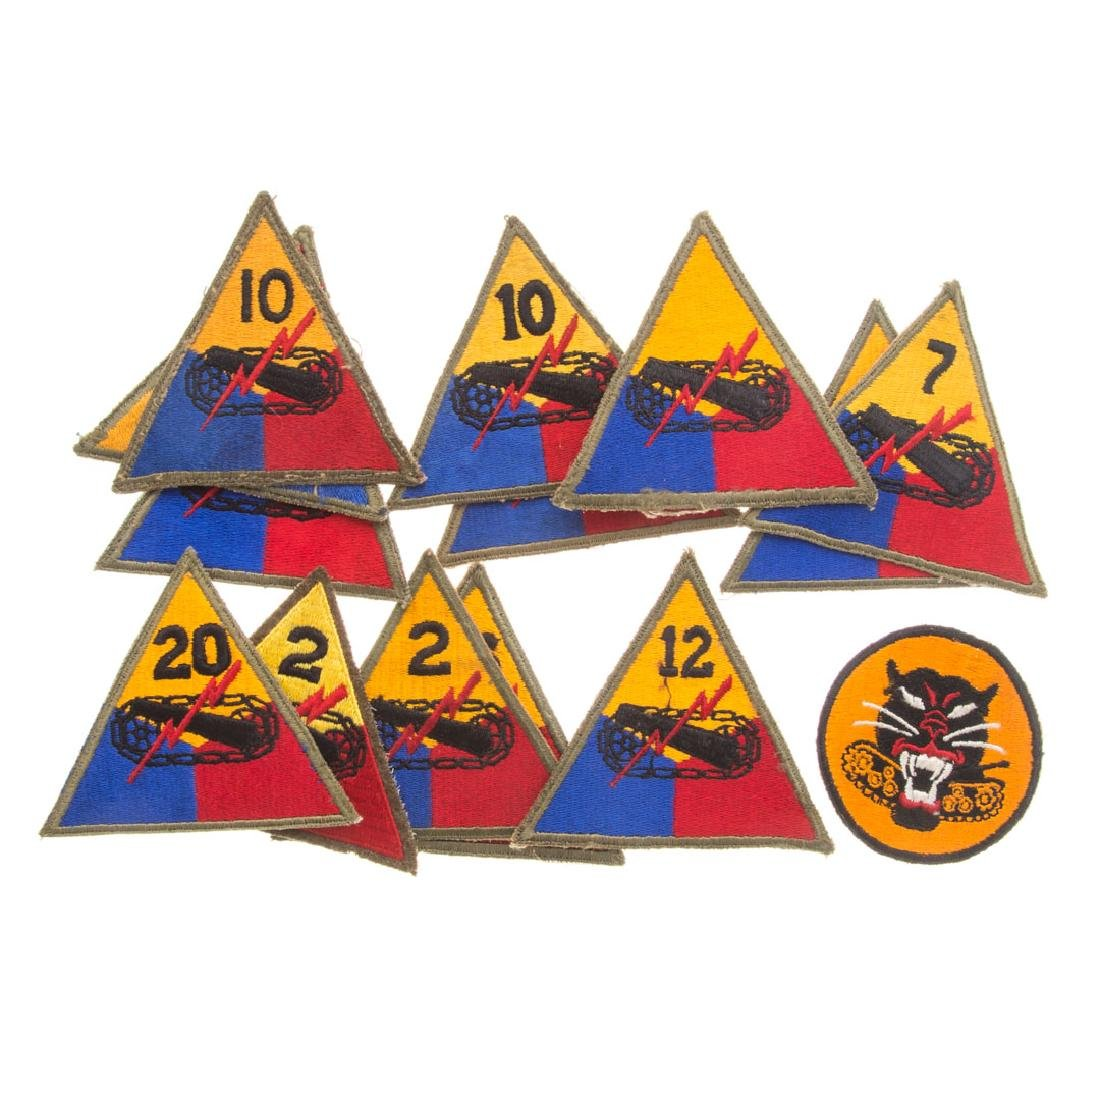 13 US Armored Div. & 1 Tank Destroyer patches